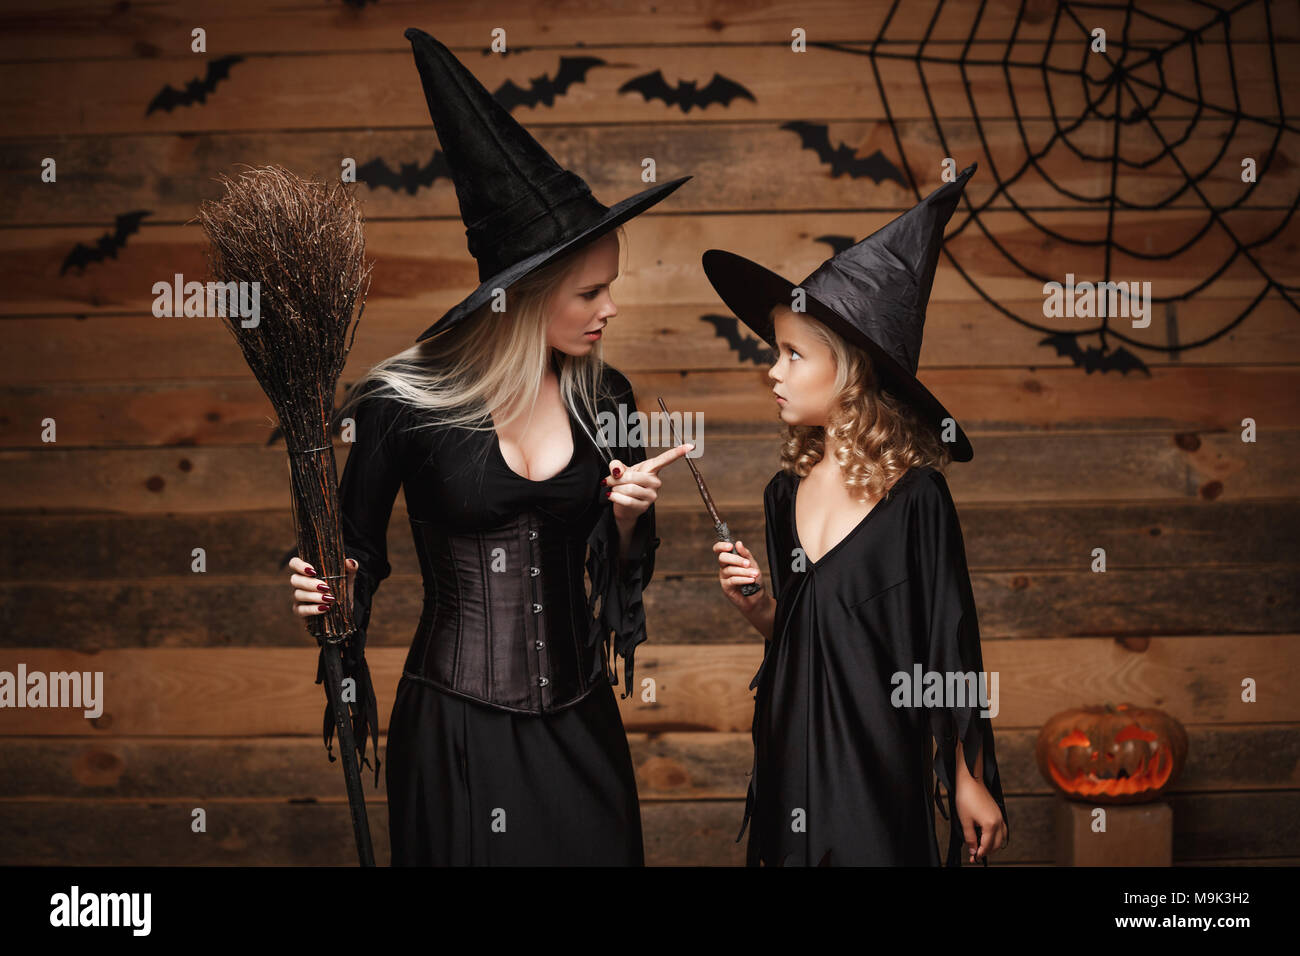 Halloween Concept - stressful witch mother teaching her daughter in witch costumes celebrating Halloween with curved pumpkins over bats and spider web on Wooden studio background. - Stock Image